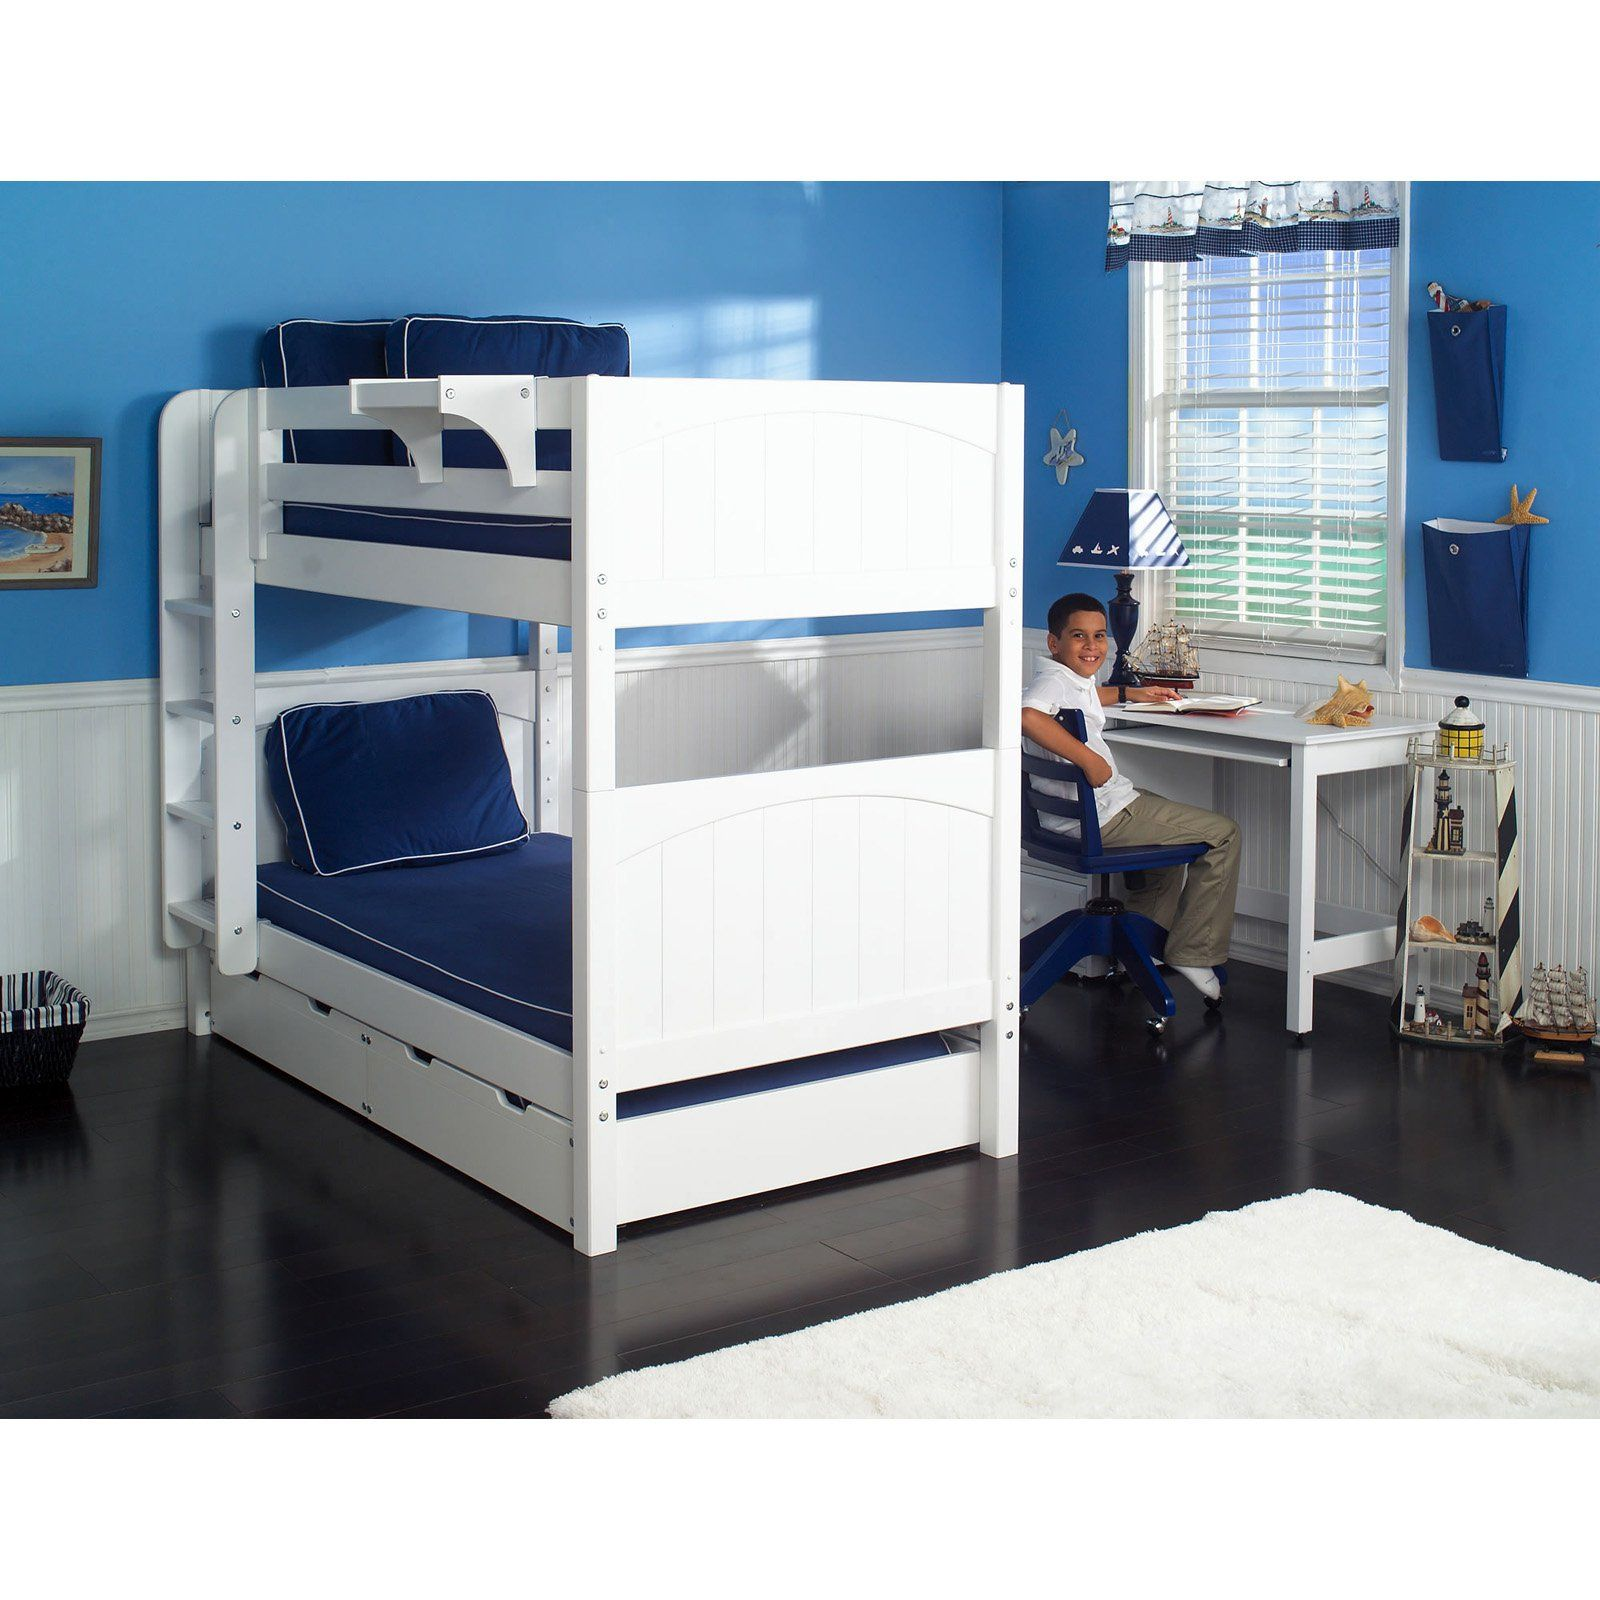 have to have it get it twin over twin bunk bed   hayneedle  - get it twin over twin bunk bed   hayneedle